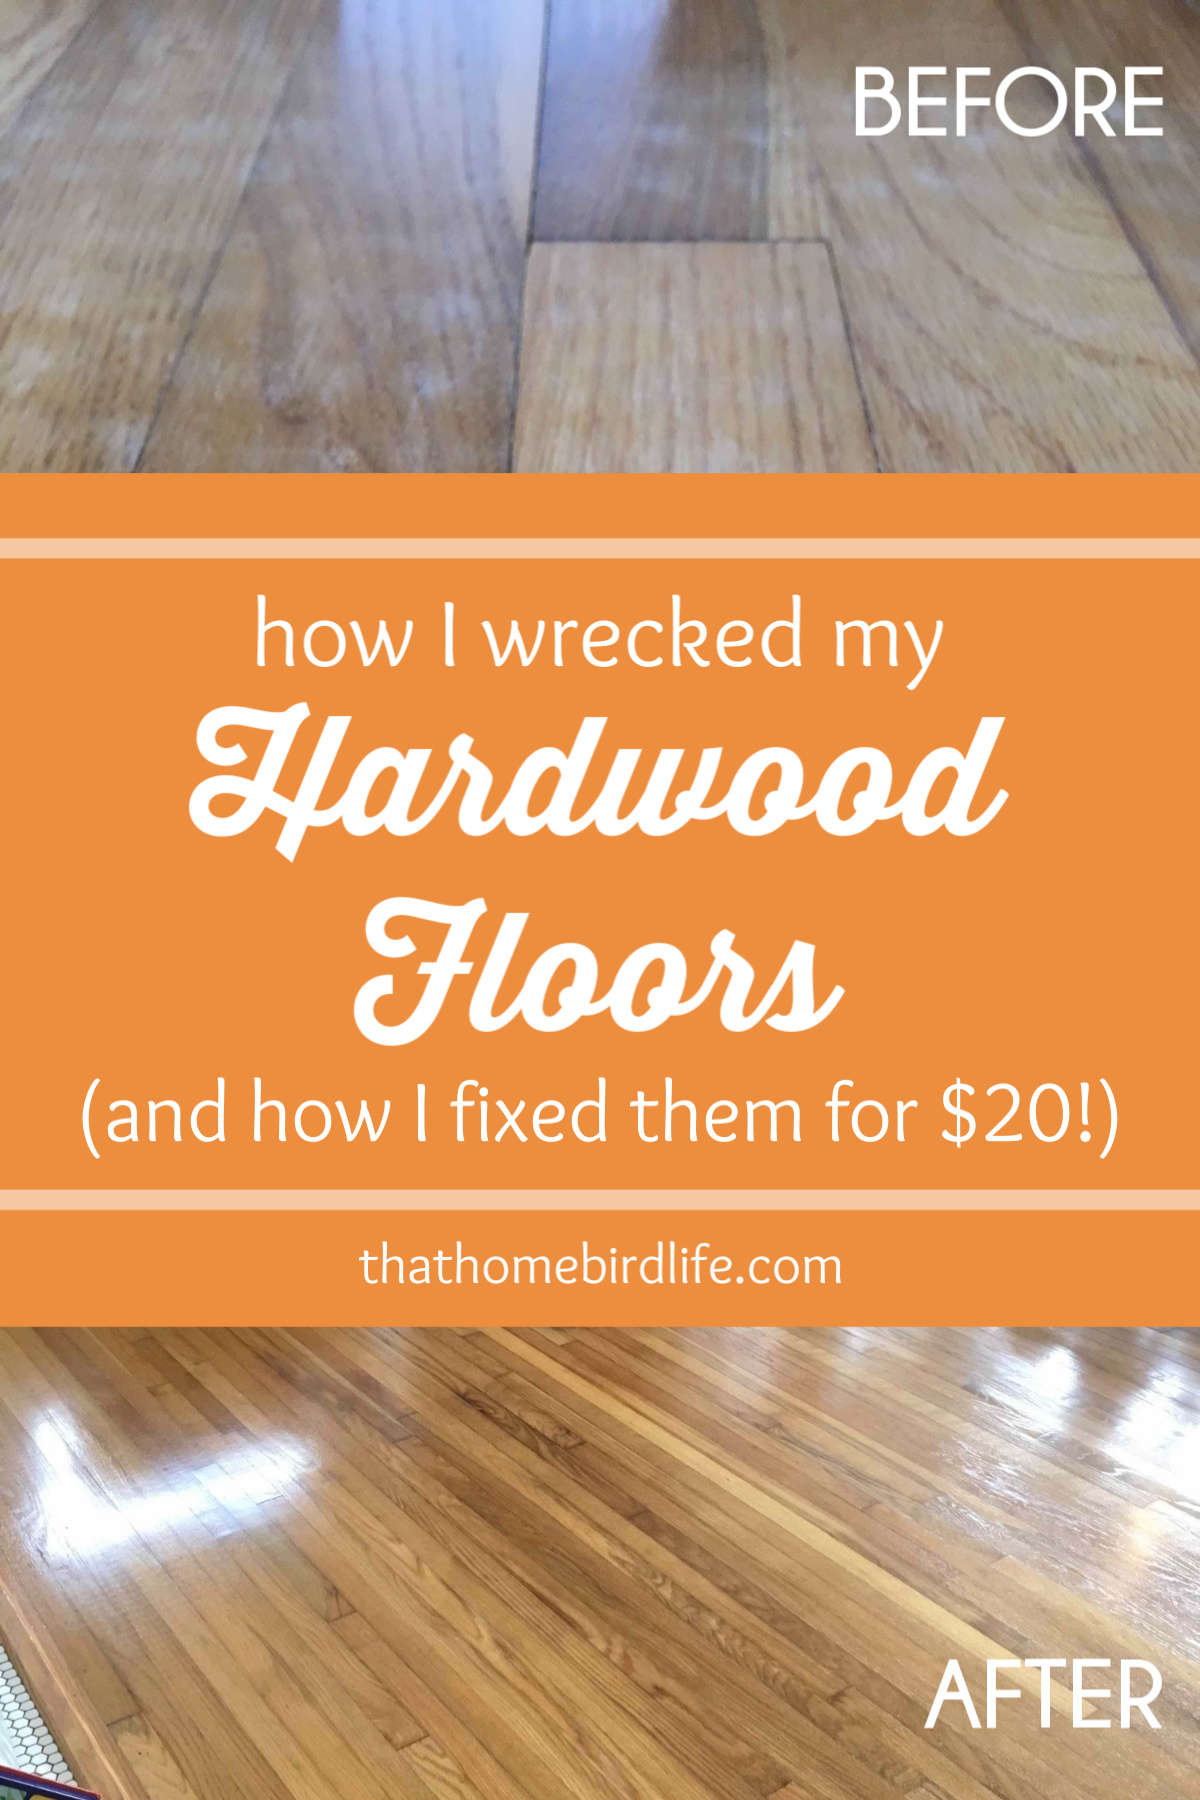 ... How I wrecked my hardwood floors and fixed them